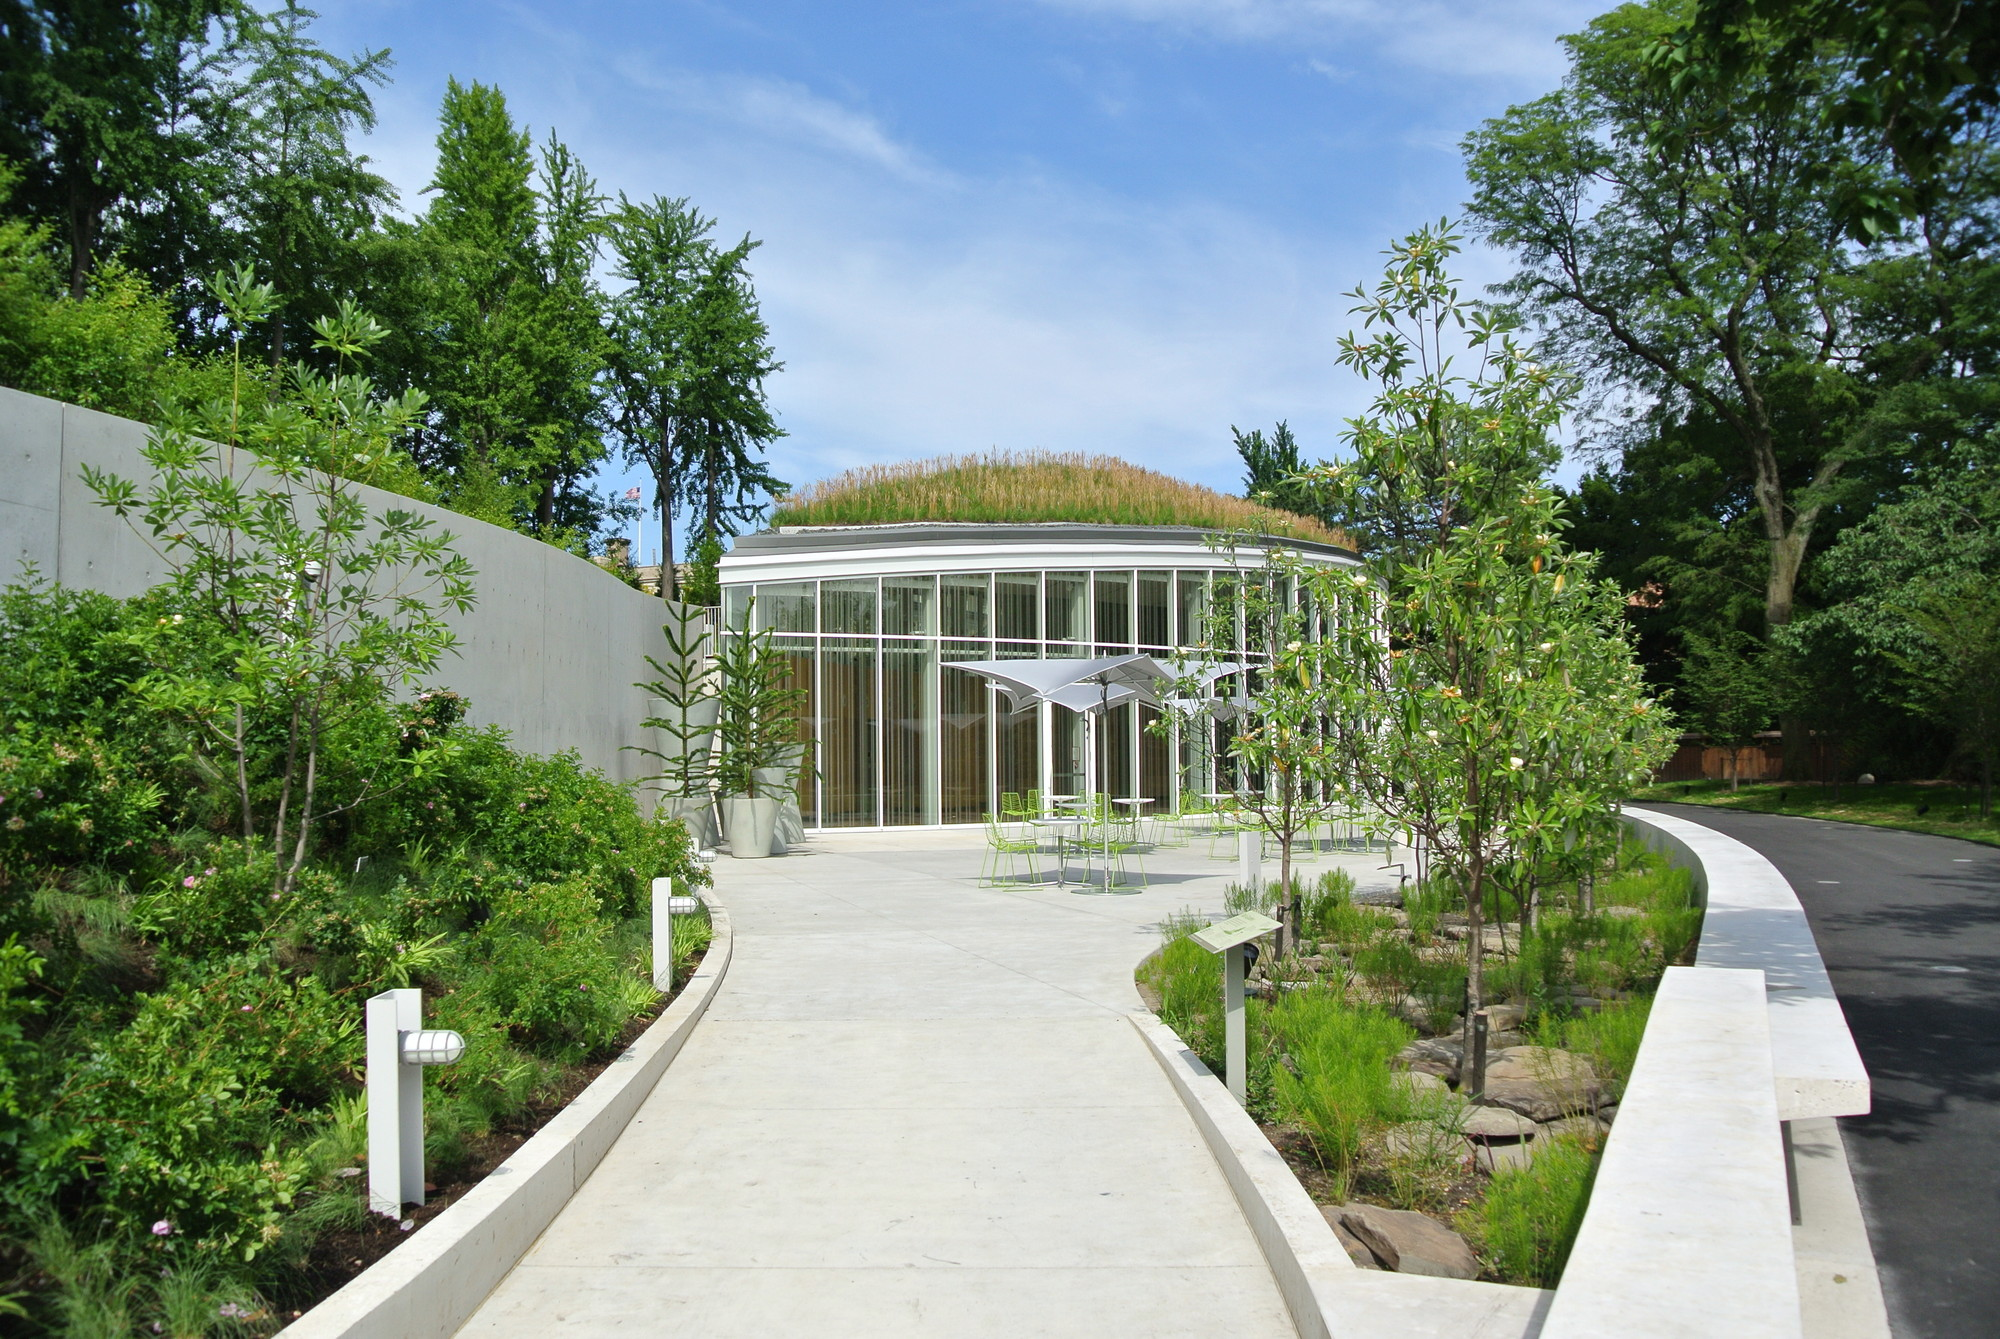 Landscaped Gardens Facility: Brooklyn Botanic Garden Visitor Center / WEISS/MANFREDI